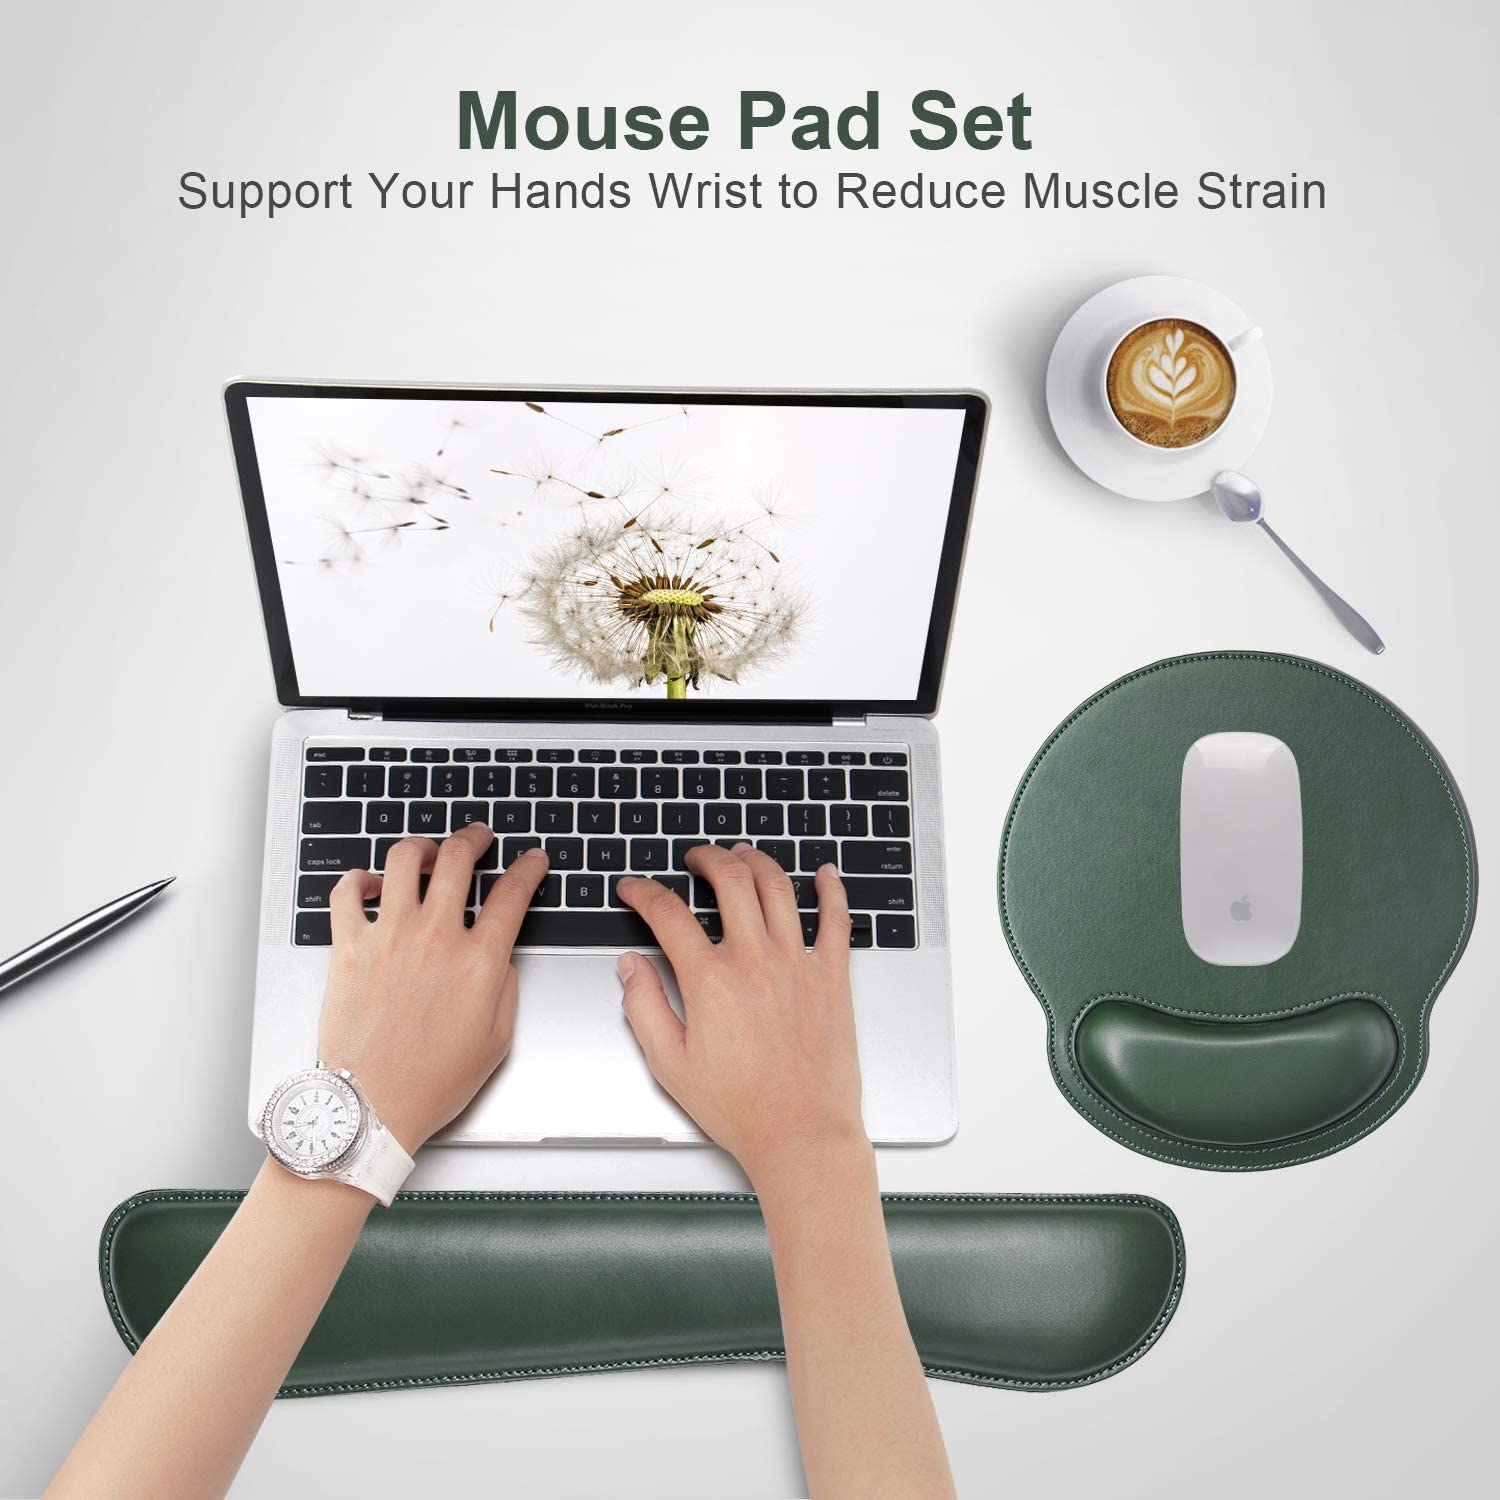 Ergonomic Mouse Pad Set Keyboard Wrist Rest Pad and Mousepads with Wrist Support,iVeze Pu Leather Memory Foam Lightweight Comfortable Mouse Pads for Home Office Efficient Working Pink